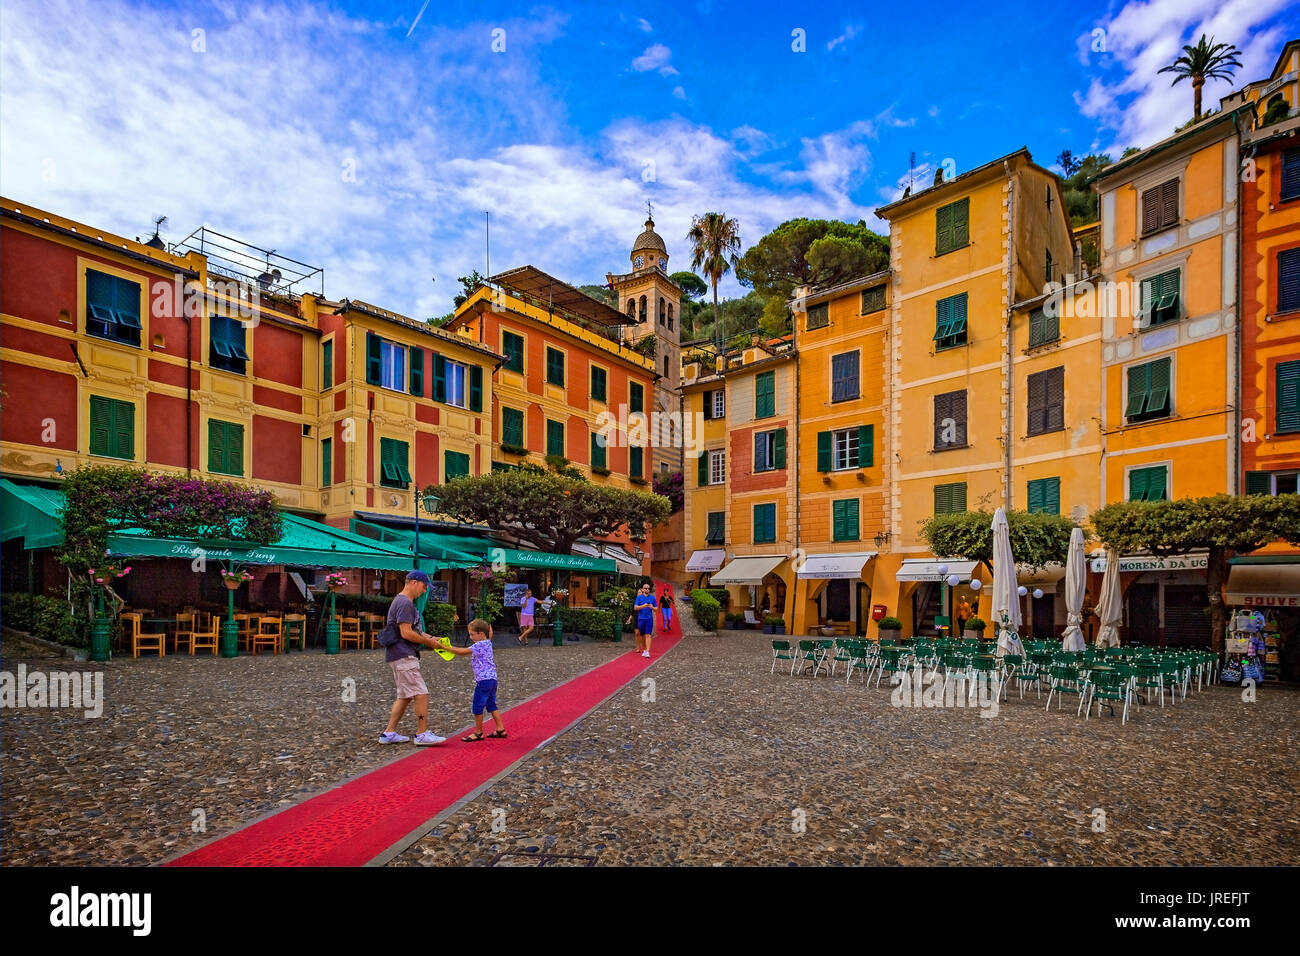 Roter Teppich In Portofino Roter Teppich Stockfotos And Roter Teppich Bilder Alamy